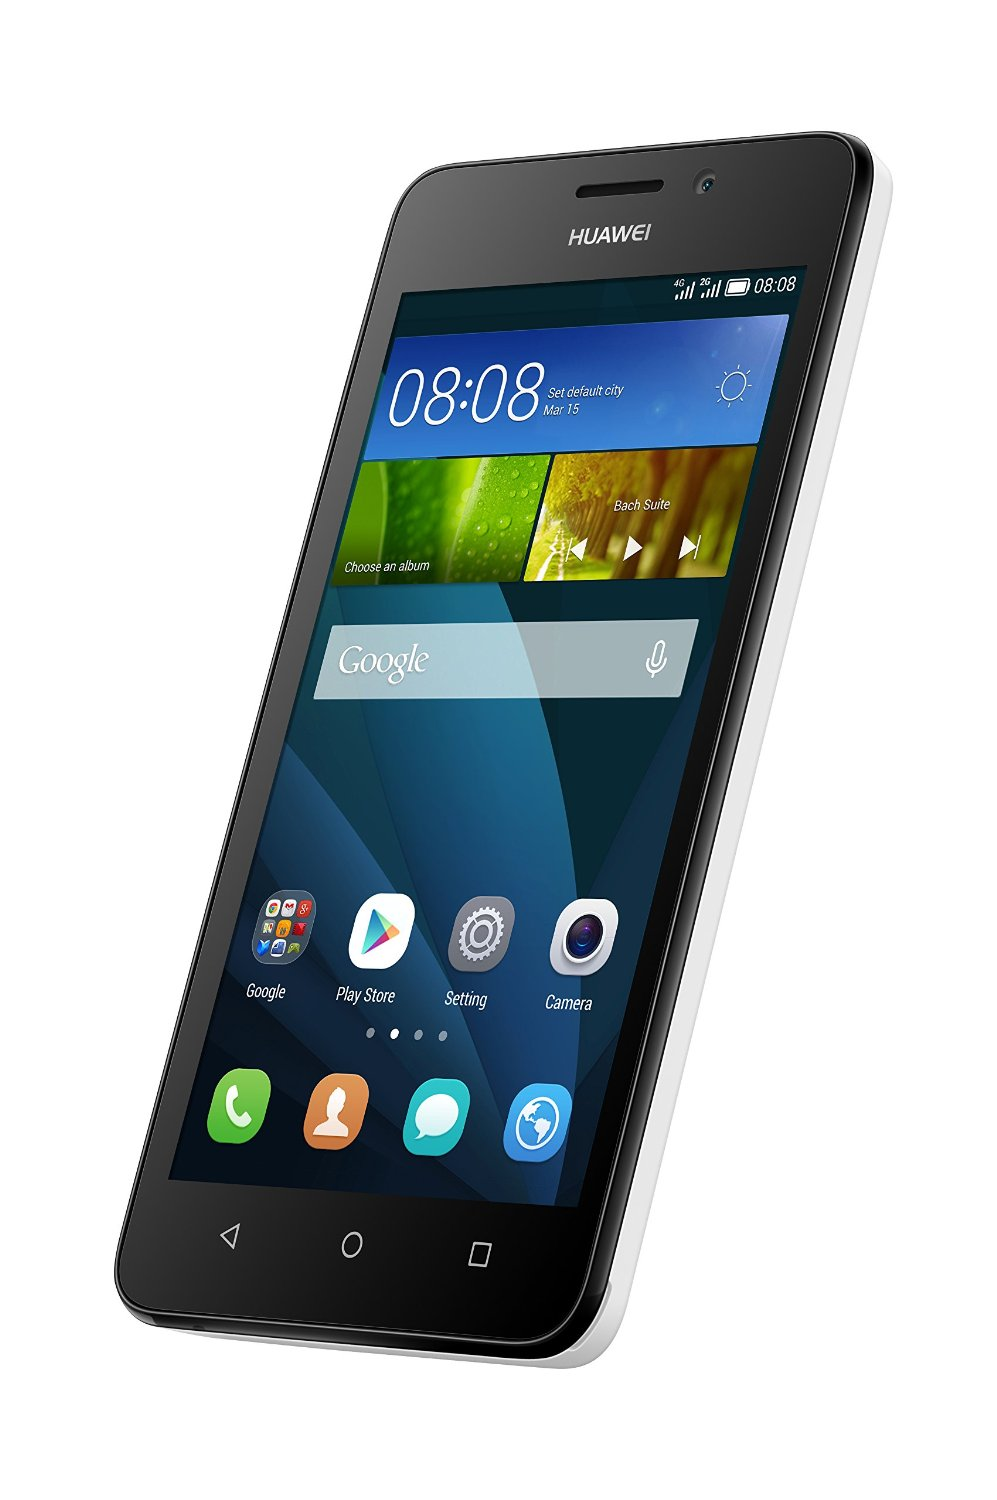 huawei y635 lte dual sim android smartphone in weiss. Black Bedroom Furniture Sets. Home Design Ideas